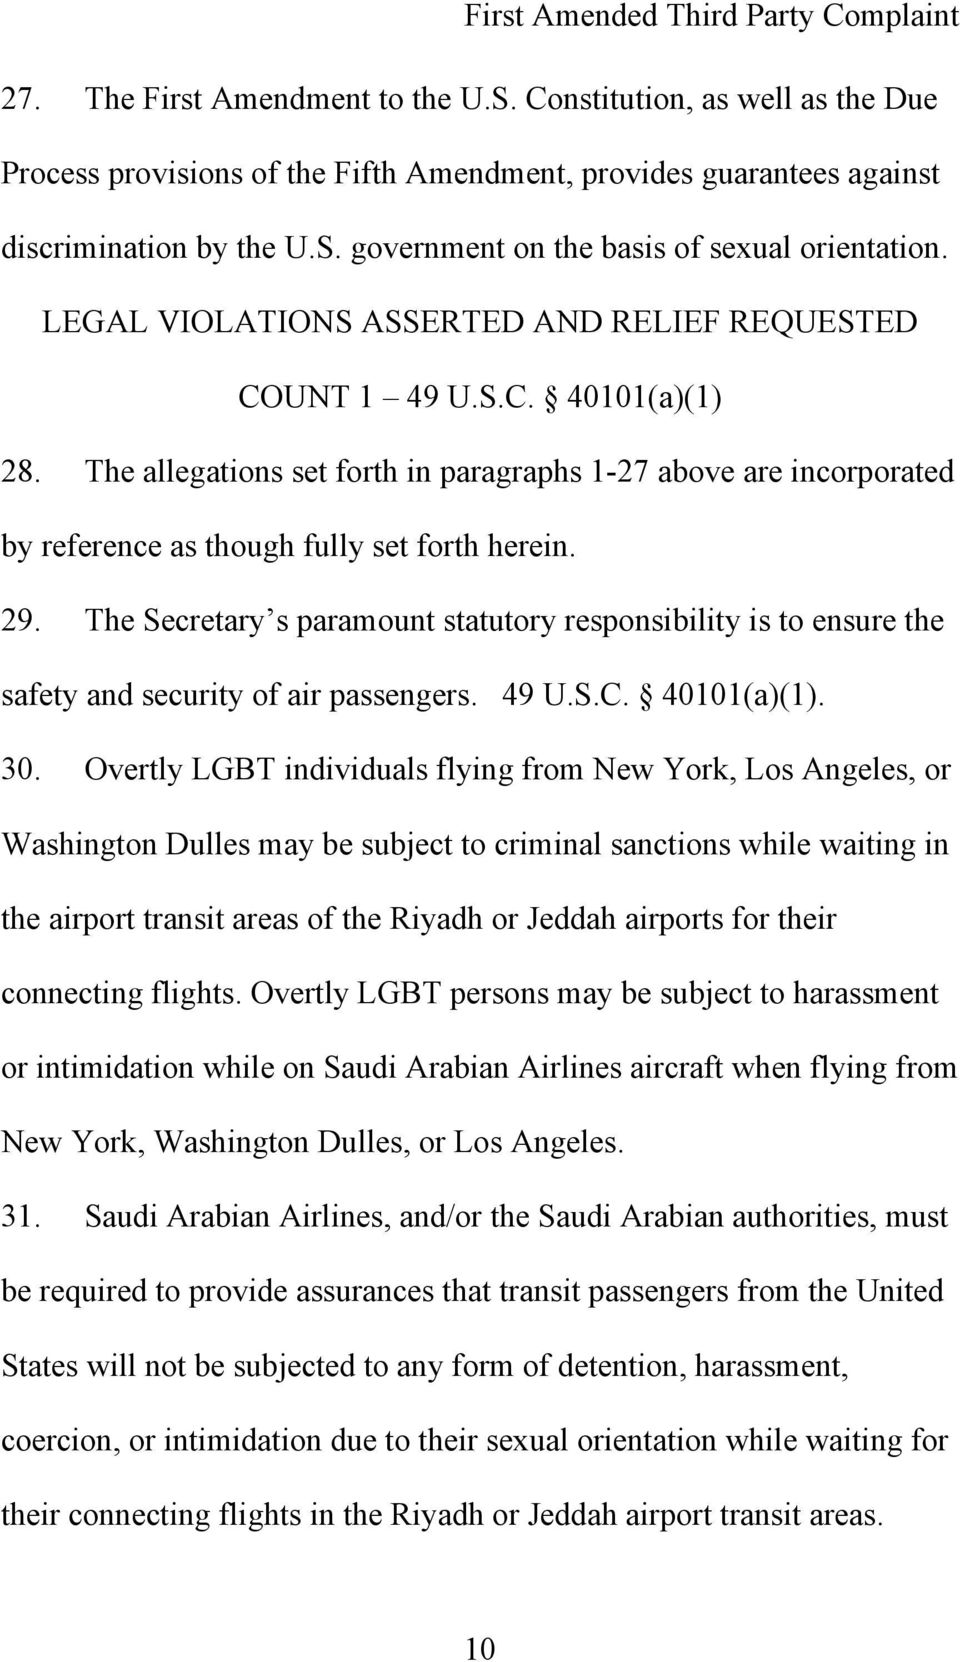 The Secretary s paramount statutory responsibility is to ensure the safety and security of air passengers. 49 U.S.C. 40101(a)(1). 30.